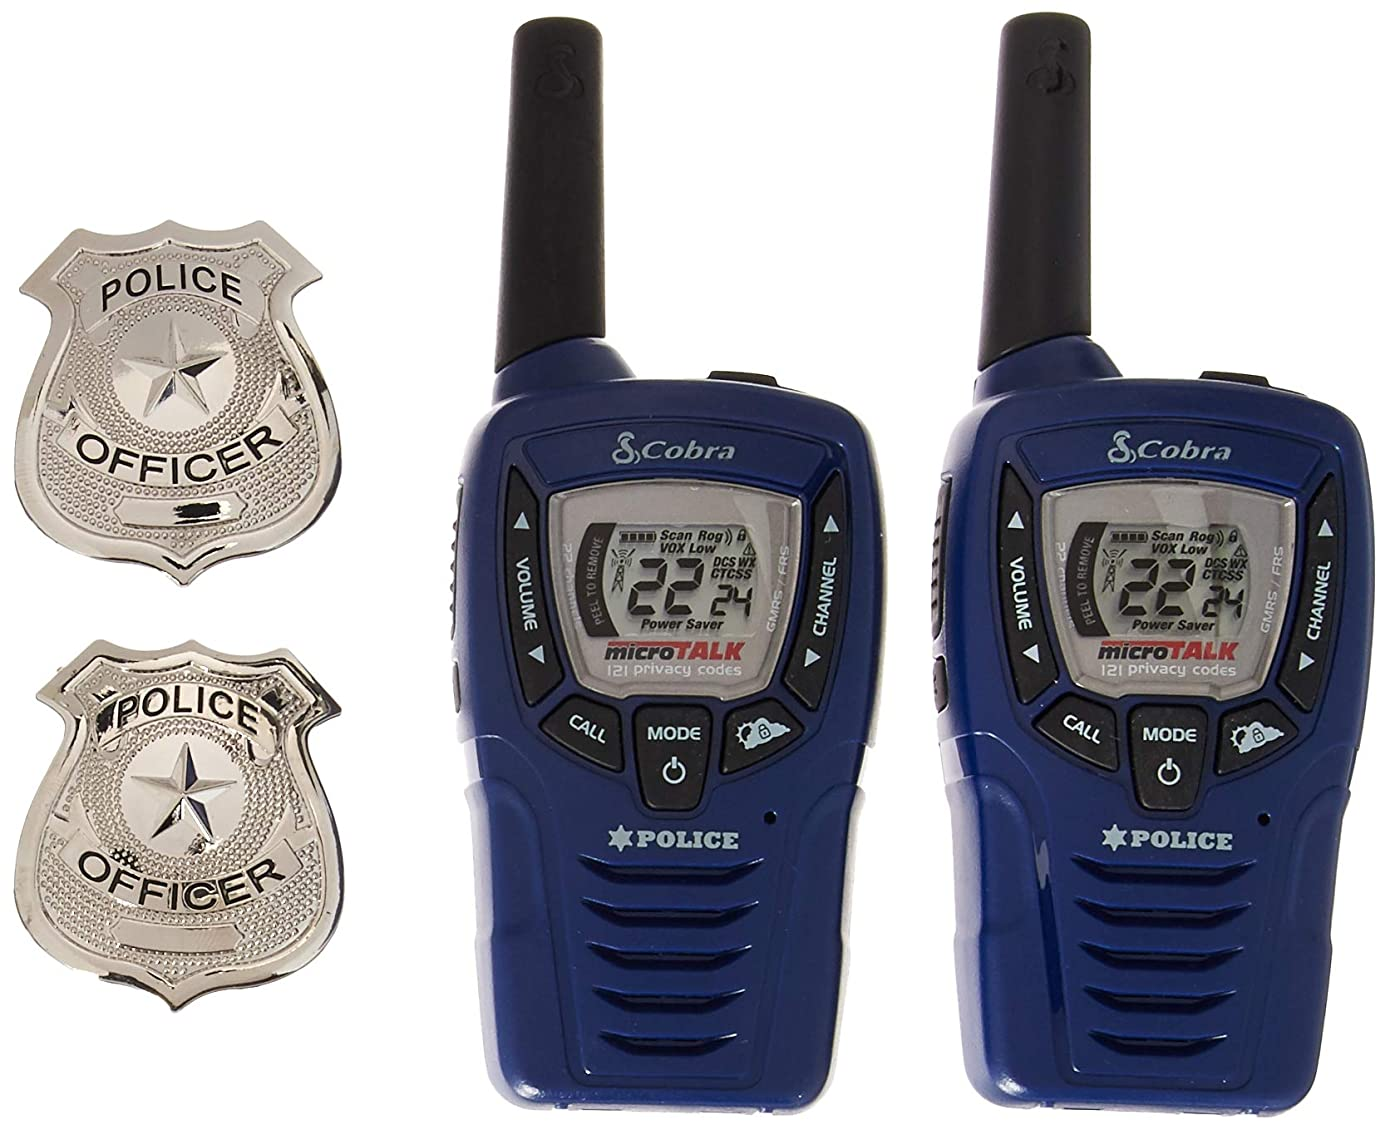 Cobra CX396A Kids' Walkie Talkies Two-Way Radios Toy for Kids, Police Version with 2 Badges (Pair)